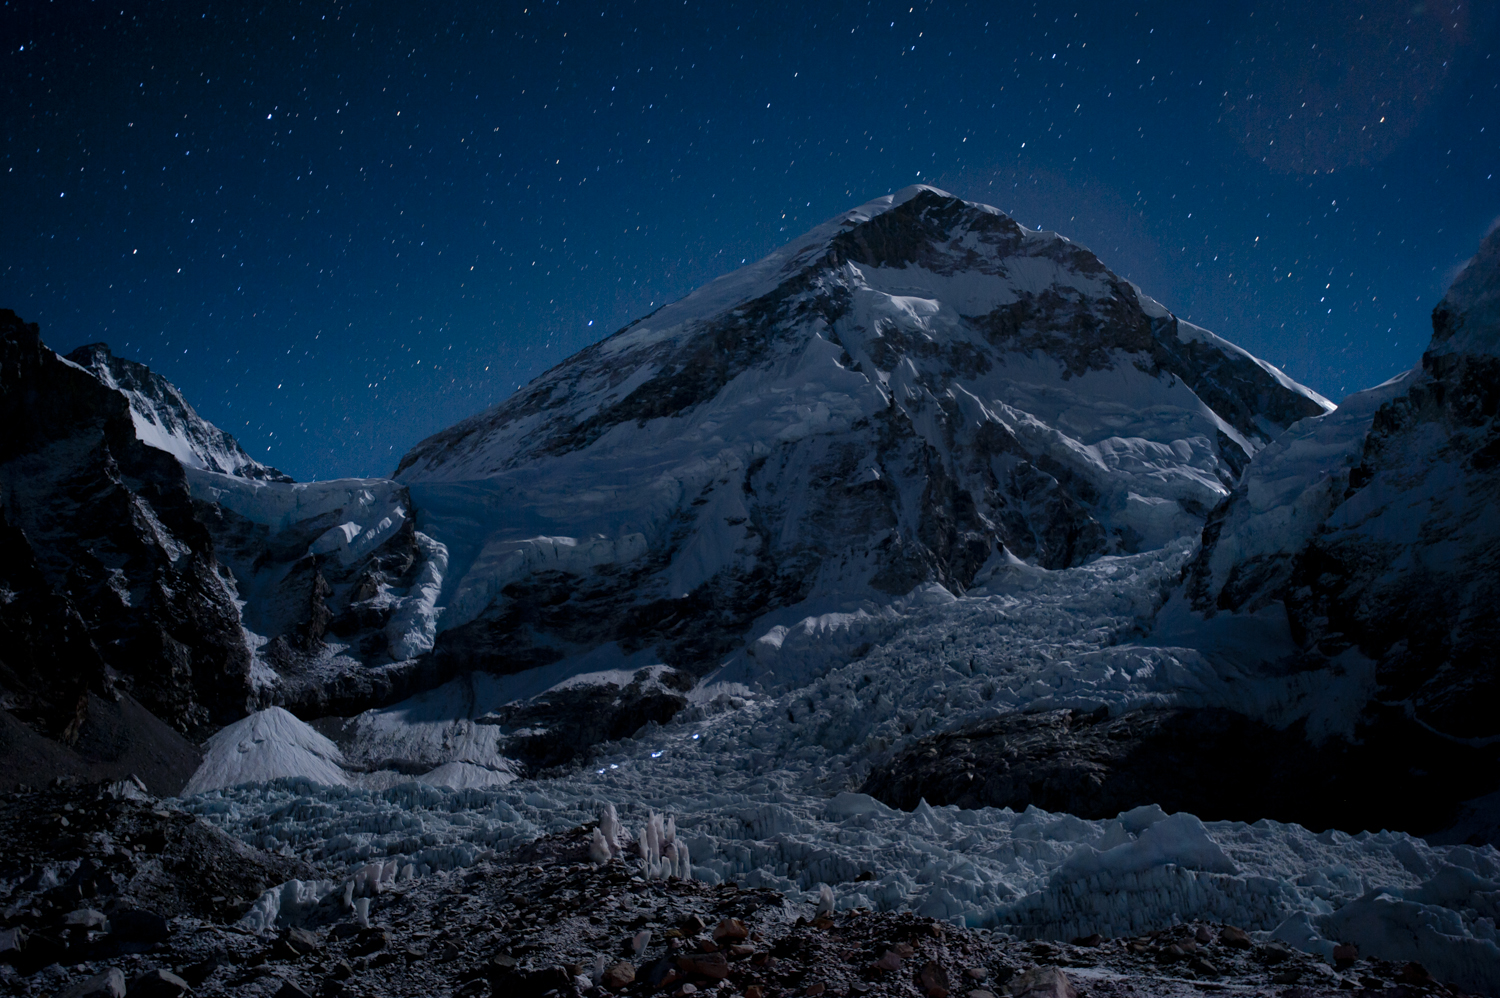 Head torches, Everest, Nepal